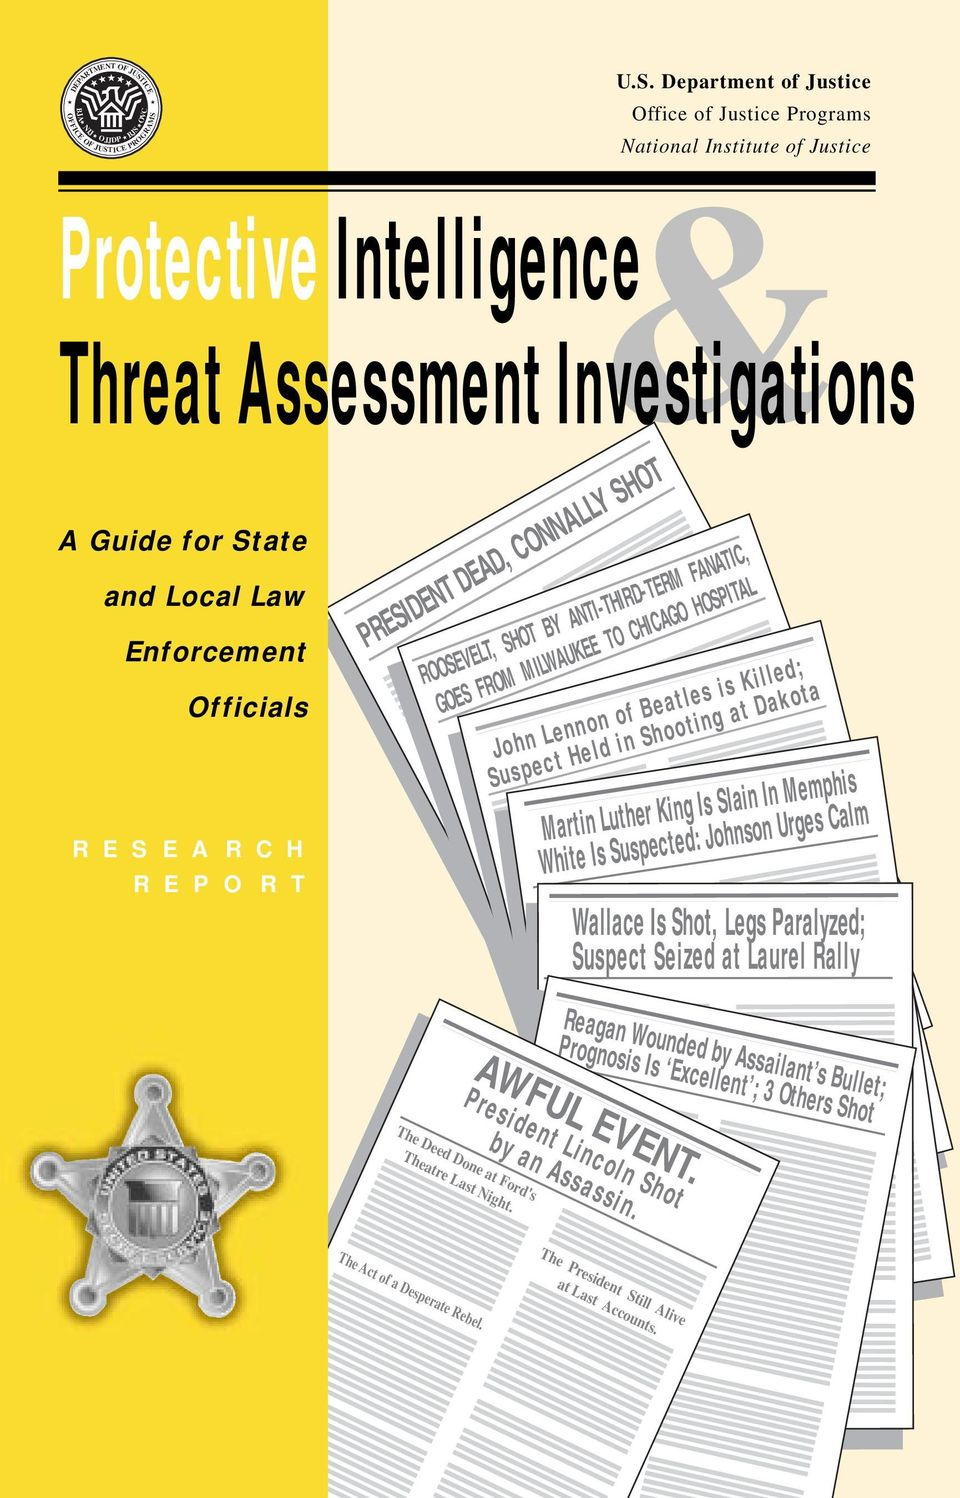 JUSTICE PROGRAMS U.S. Department of Justice Office of Justice Programs National Institute of Justice & Protective Intelligence Threat Assessment Investigations A Guide for State and Local Law